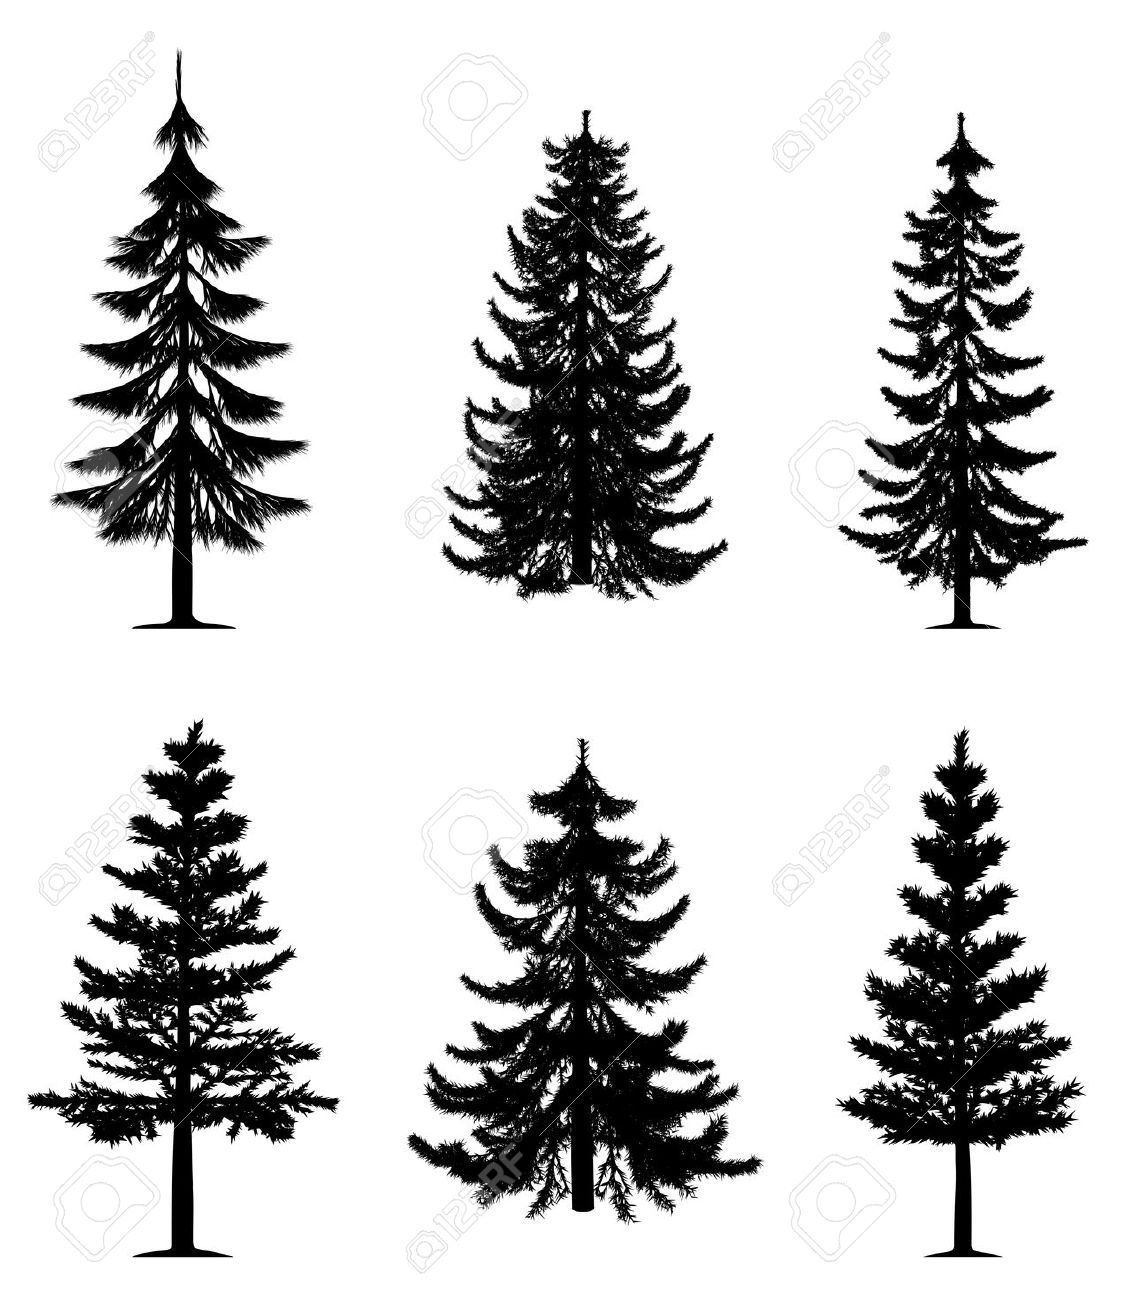 Pine clipart fine tree. Trees collection royalty free